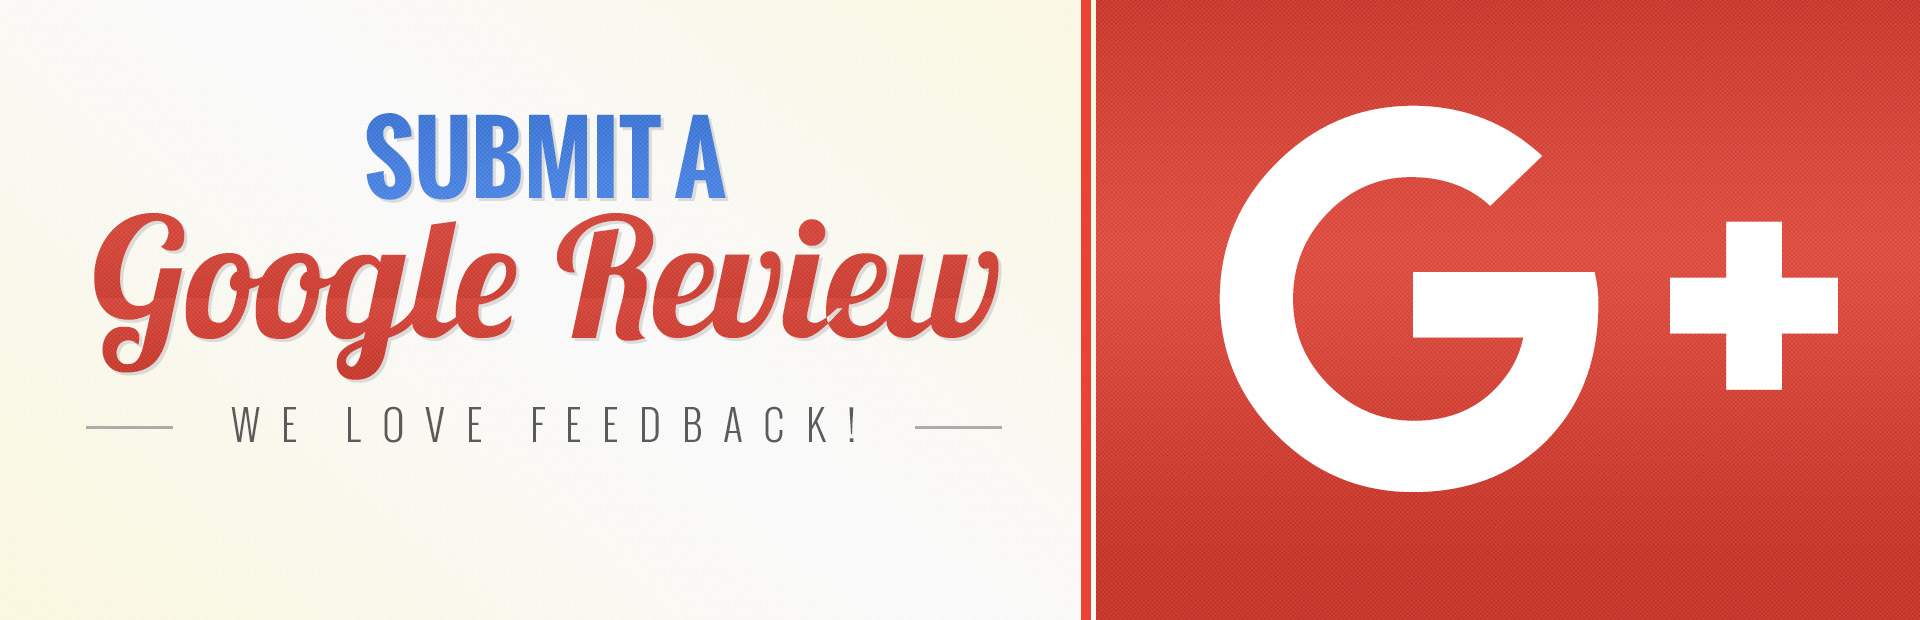 We love feedback! Submit a Google review!